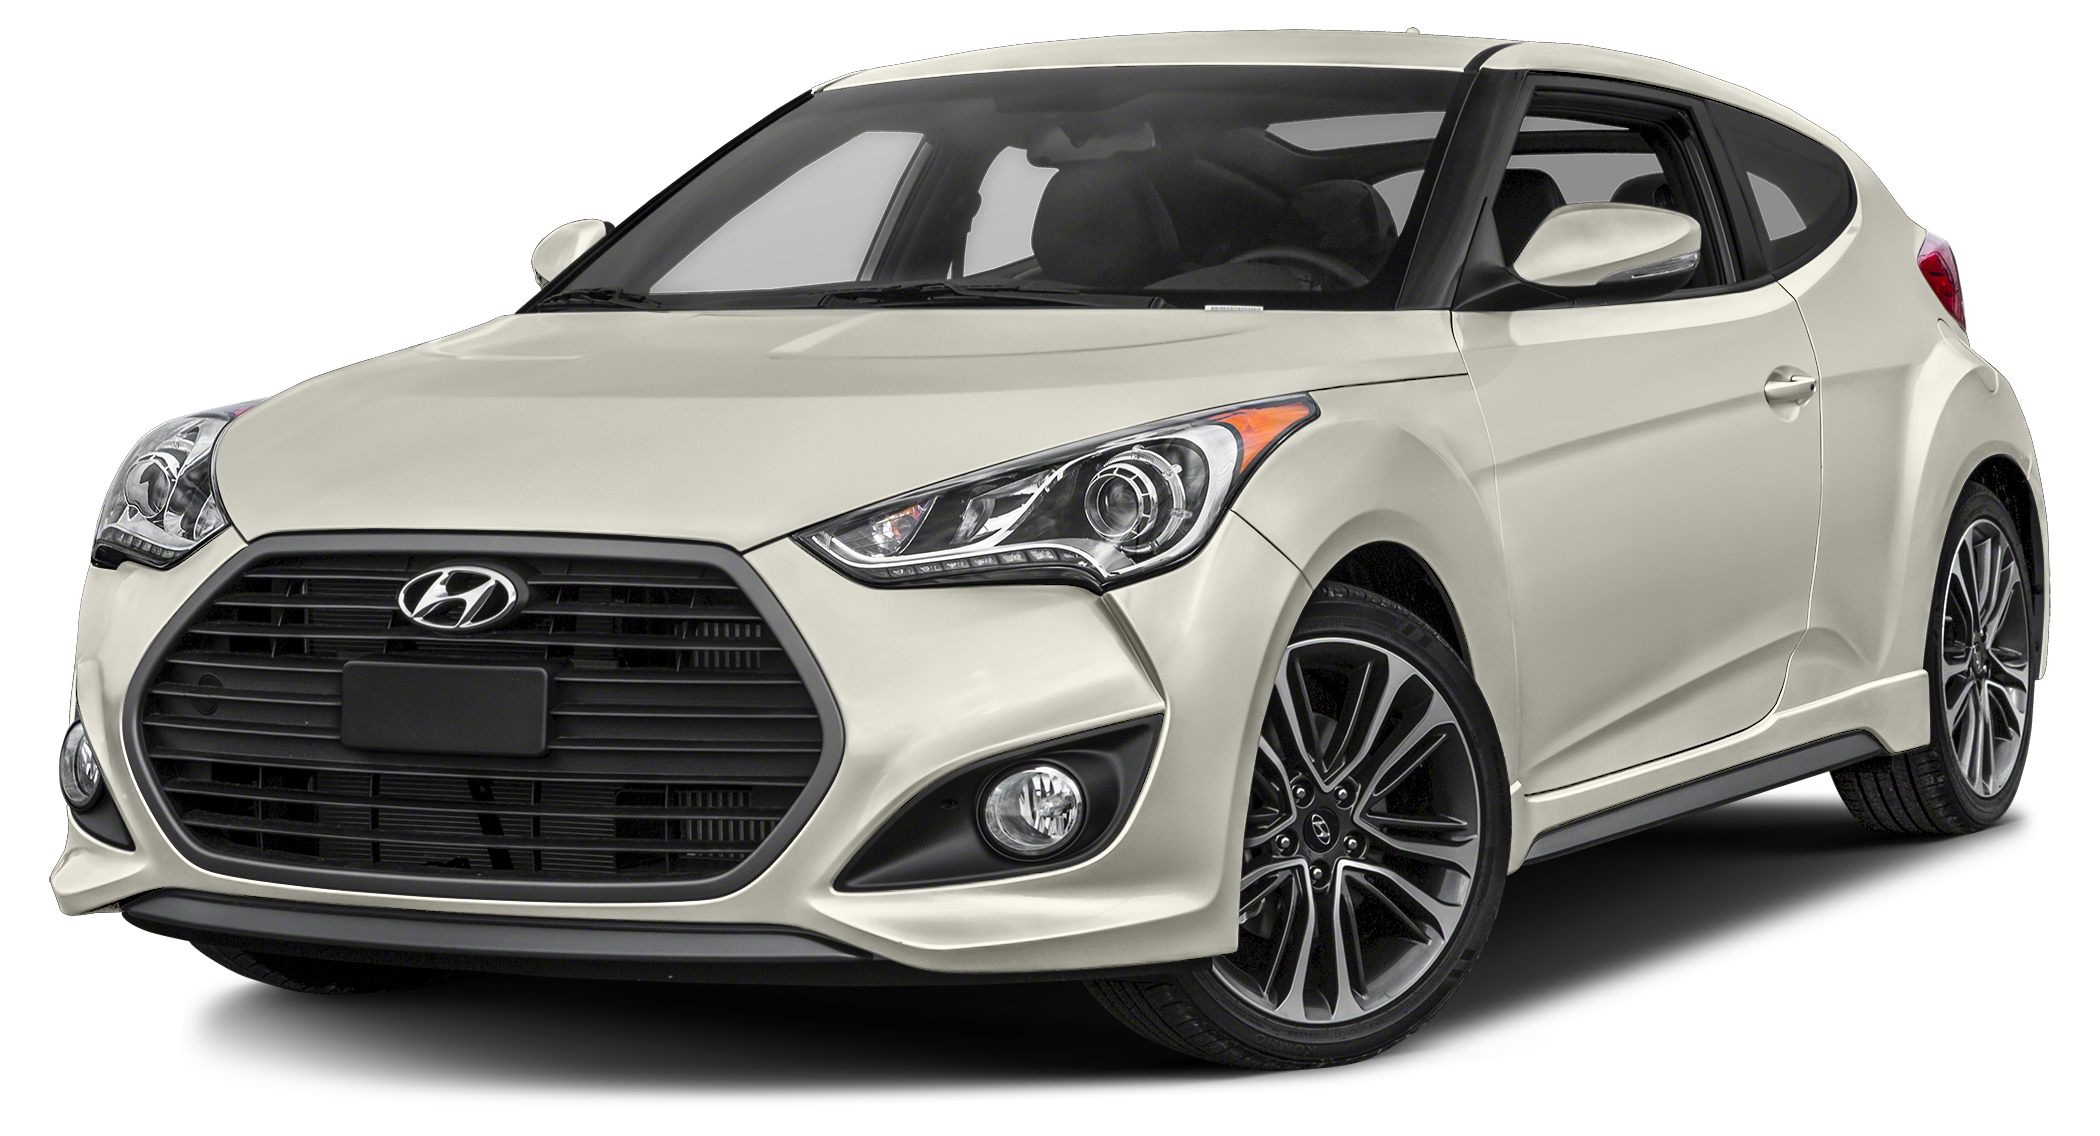 2016 Hyundai Veloster Turbo Looking for a new car at an affordable price Introducing the 2016 Hyu